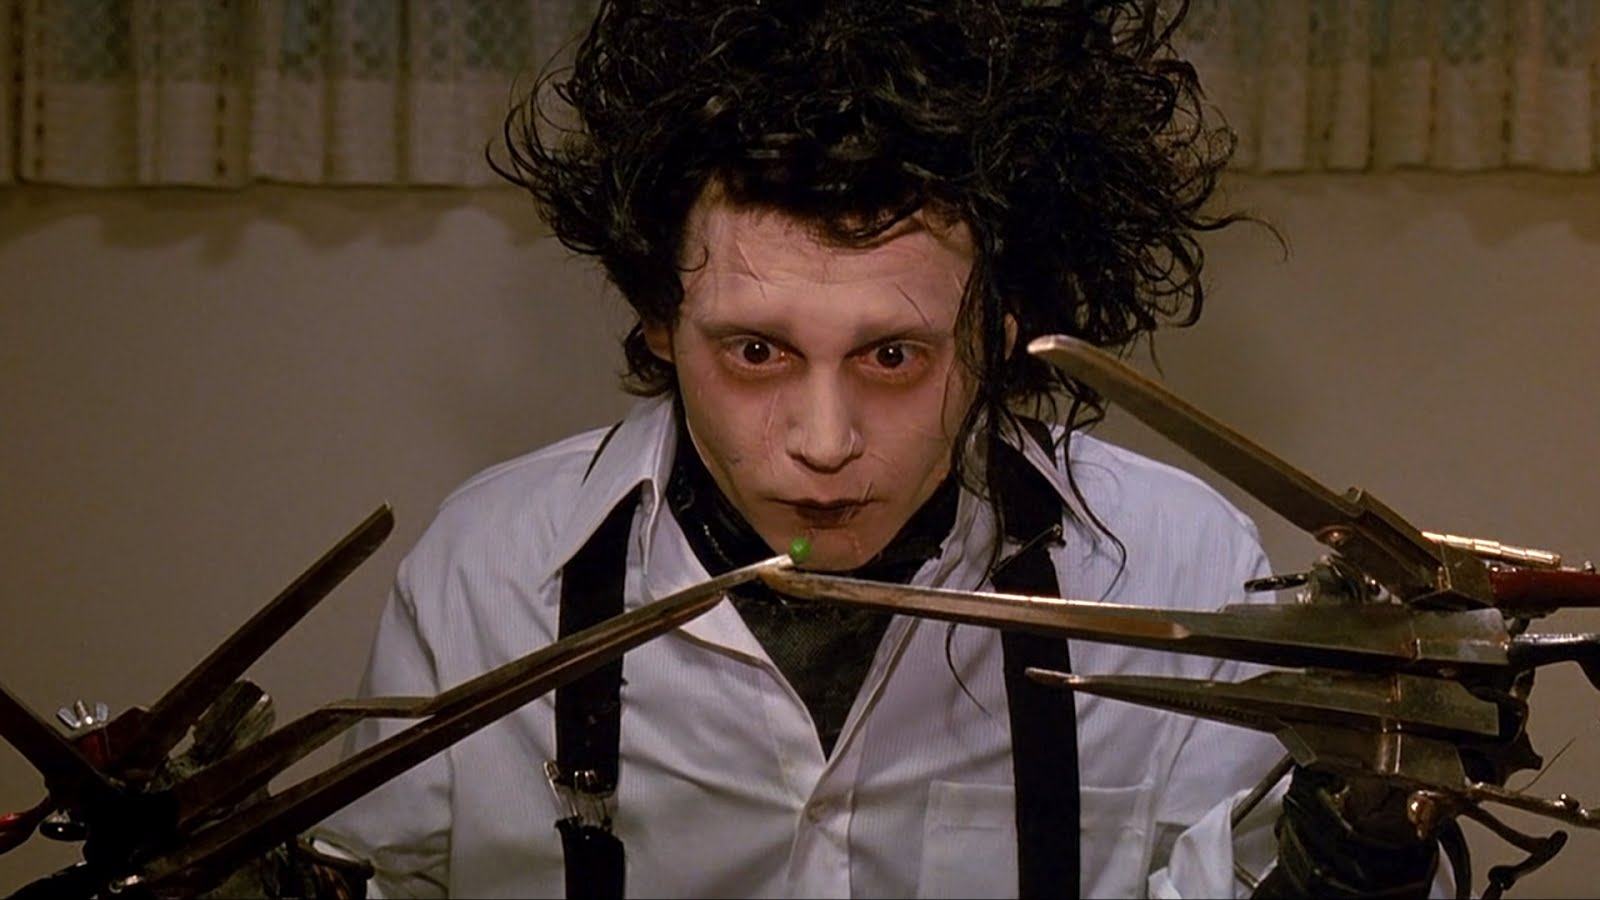 Johnny Depp as Edward Scissorhands & Winona Ryder as Kim Boggs Edward Scissorhands picture image